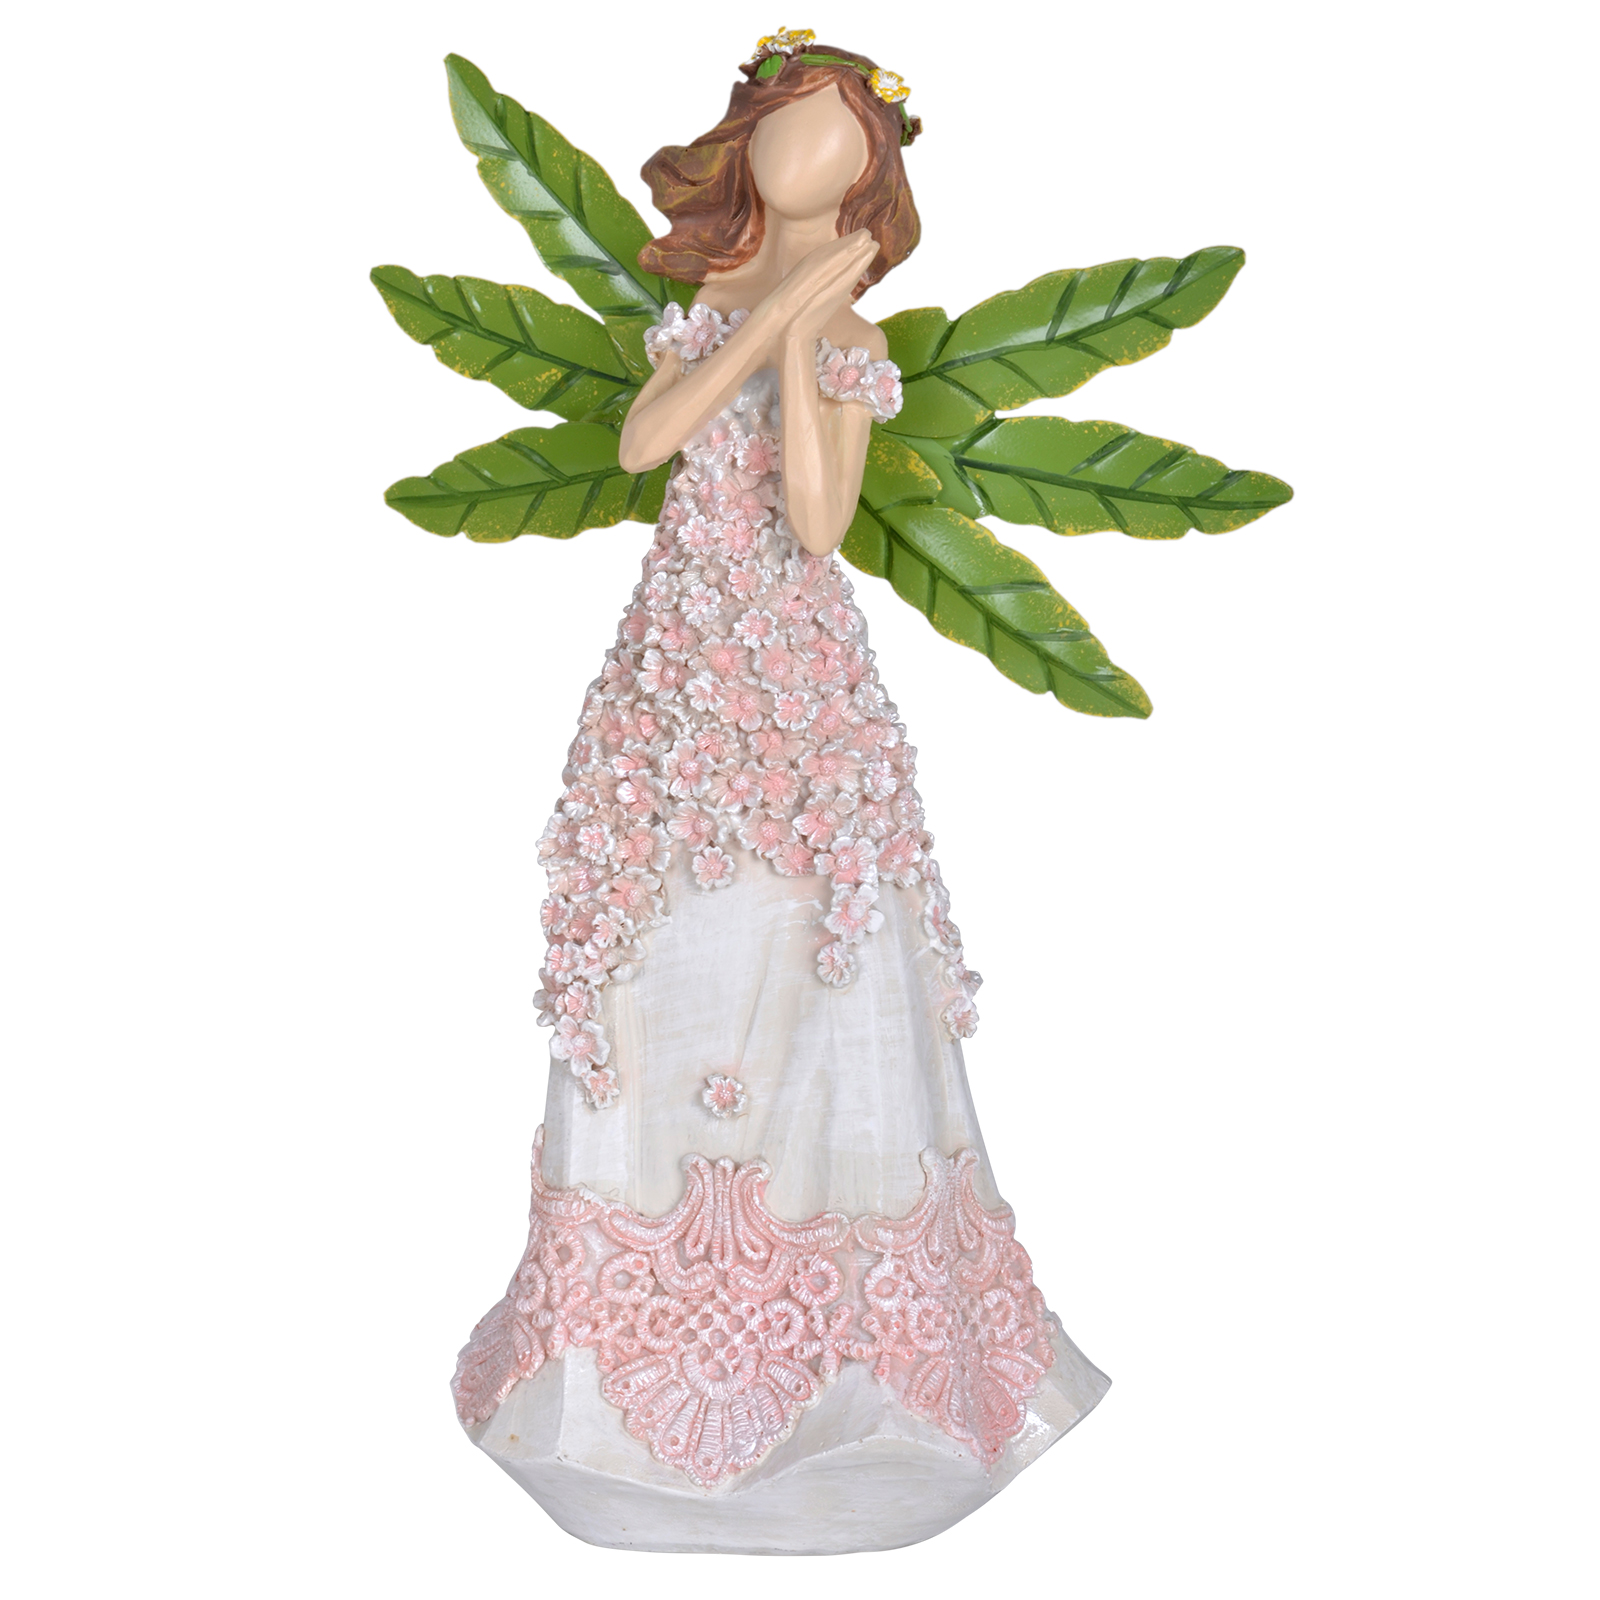 Angel figurine standing decoration home d cor ornament Eba home interior figurines